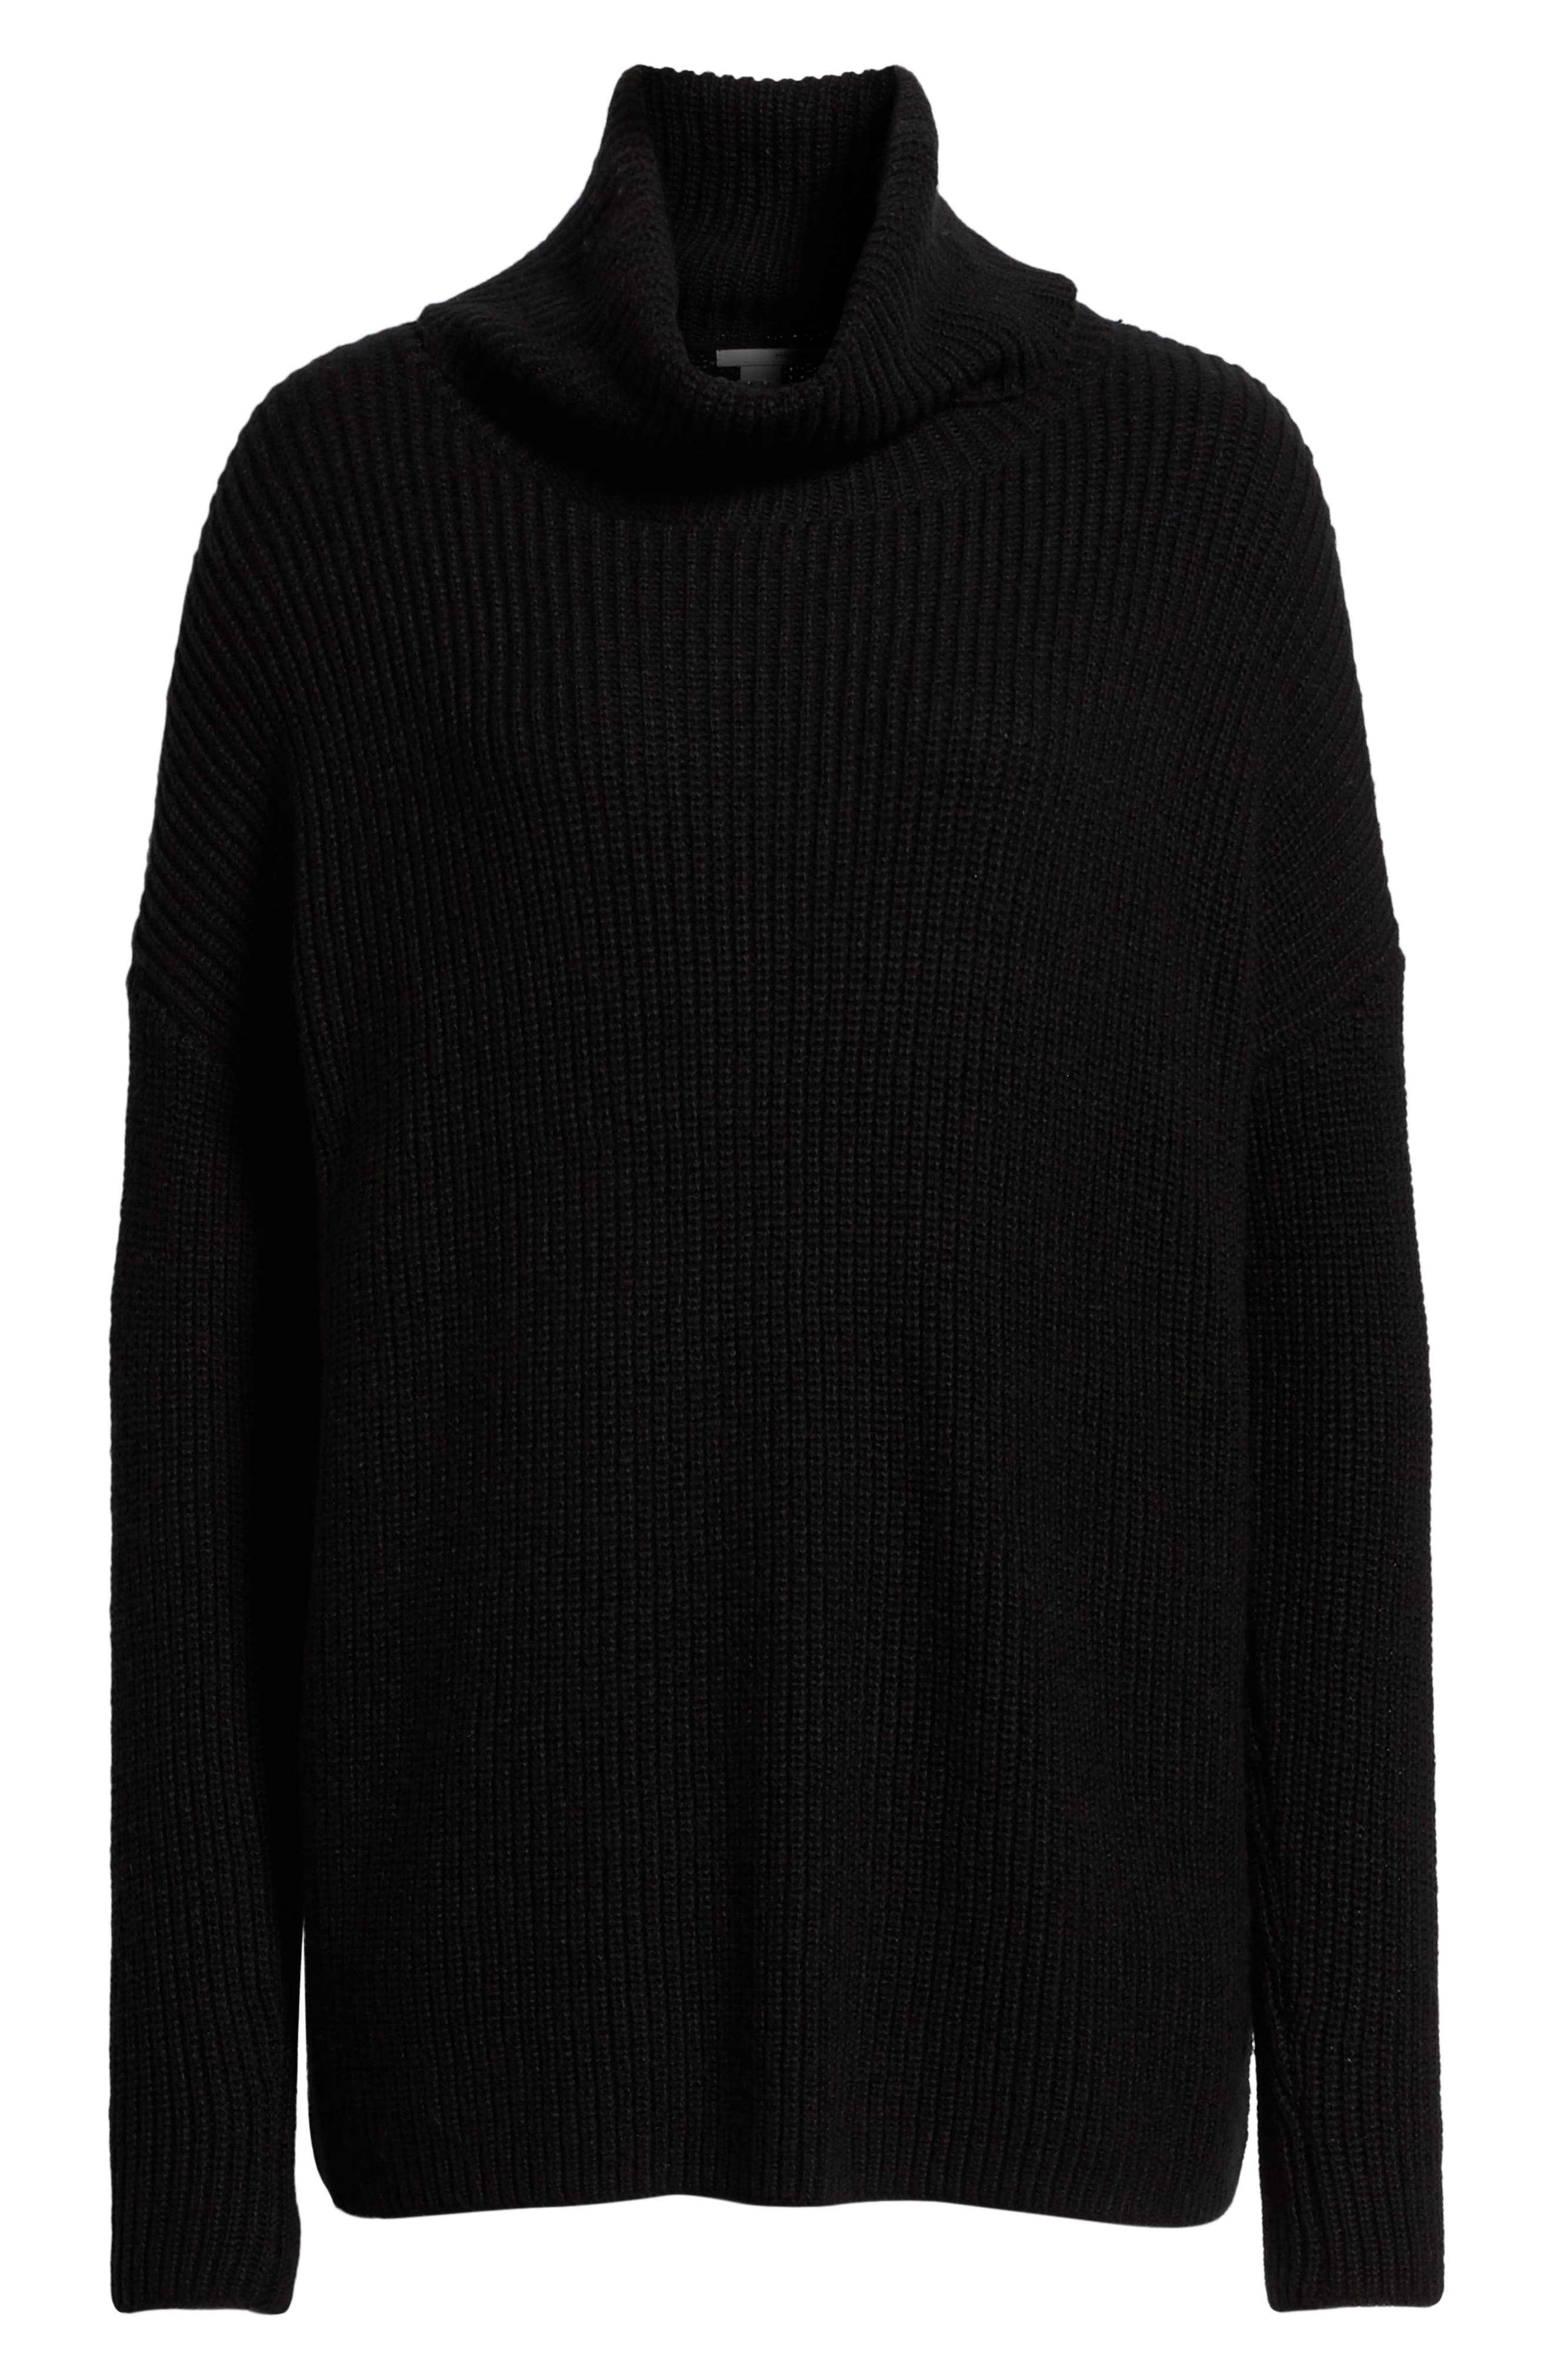 Oversized Turtleneck Tunic Sweater,                             Alternate thumbnail 6, color,                             001